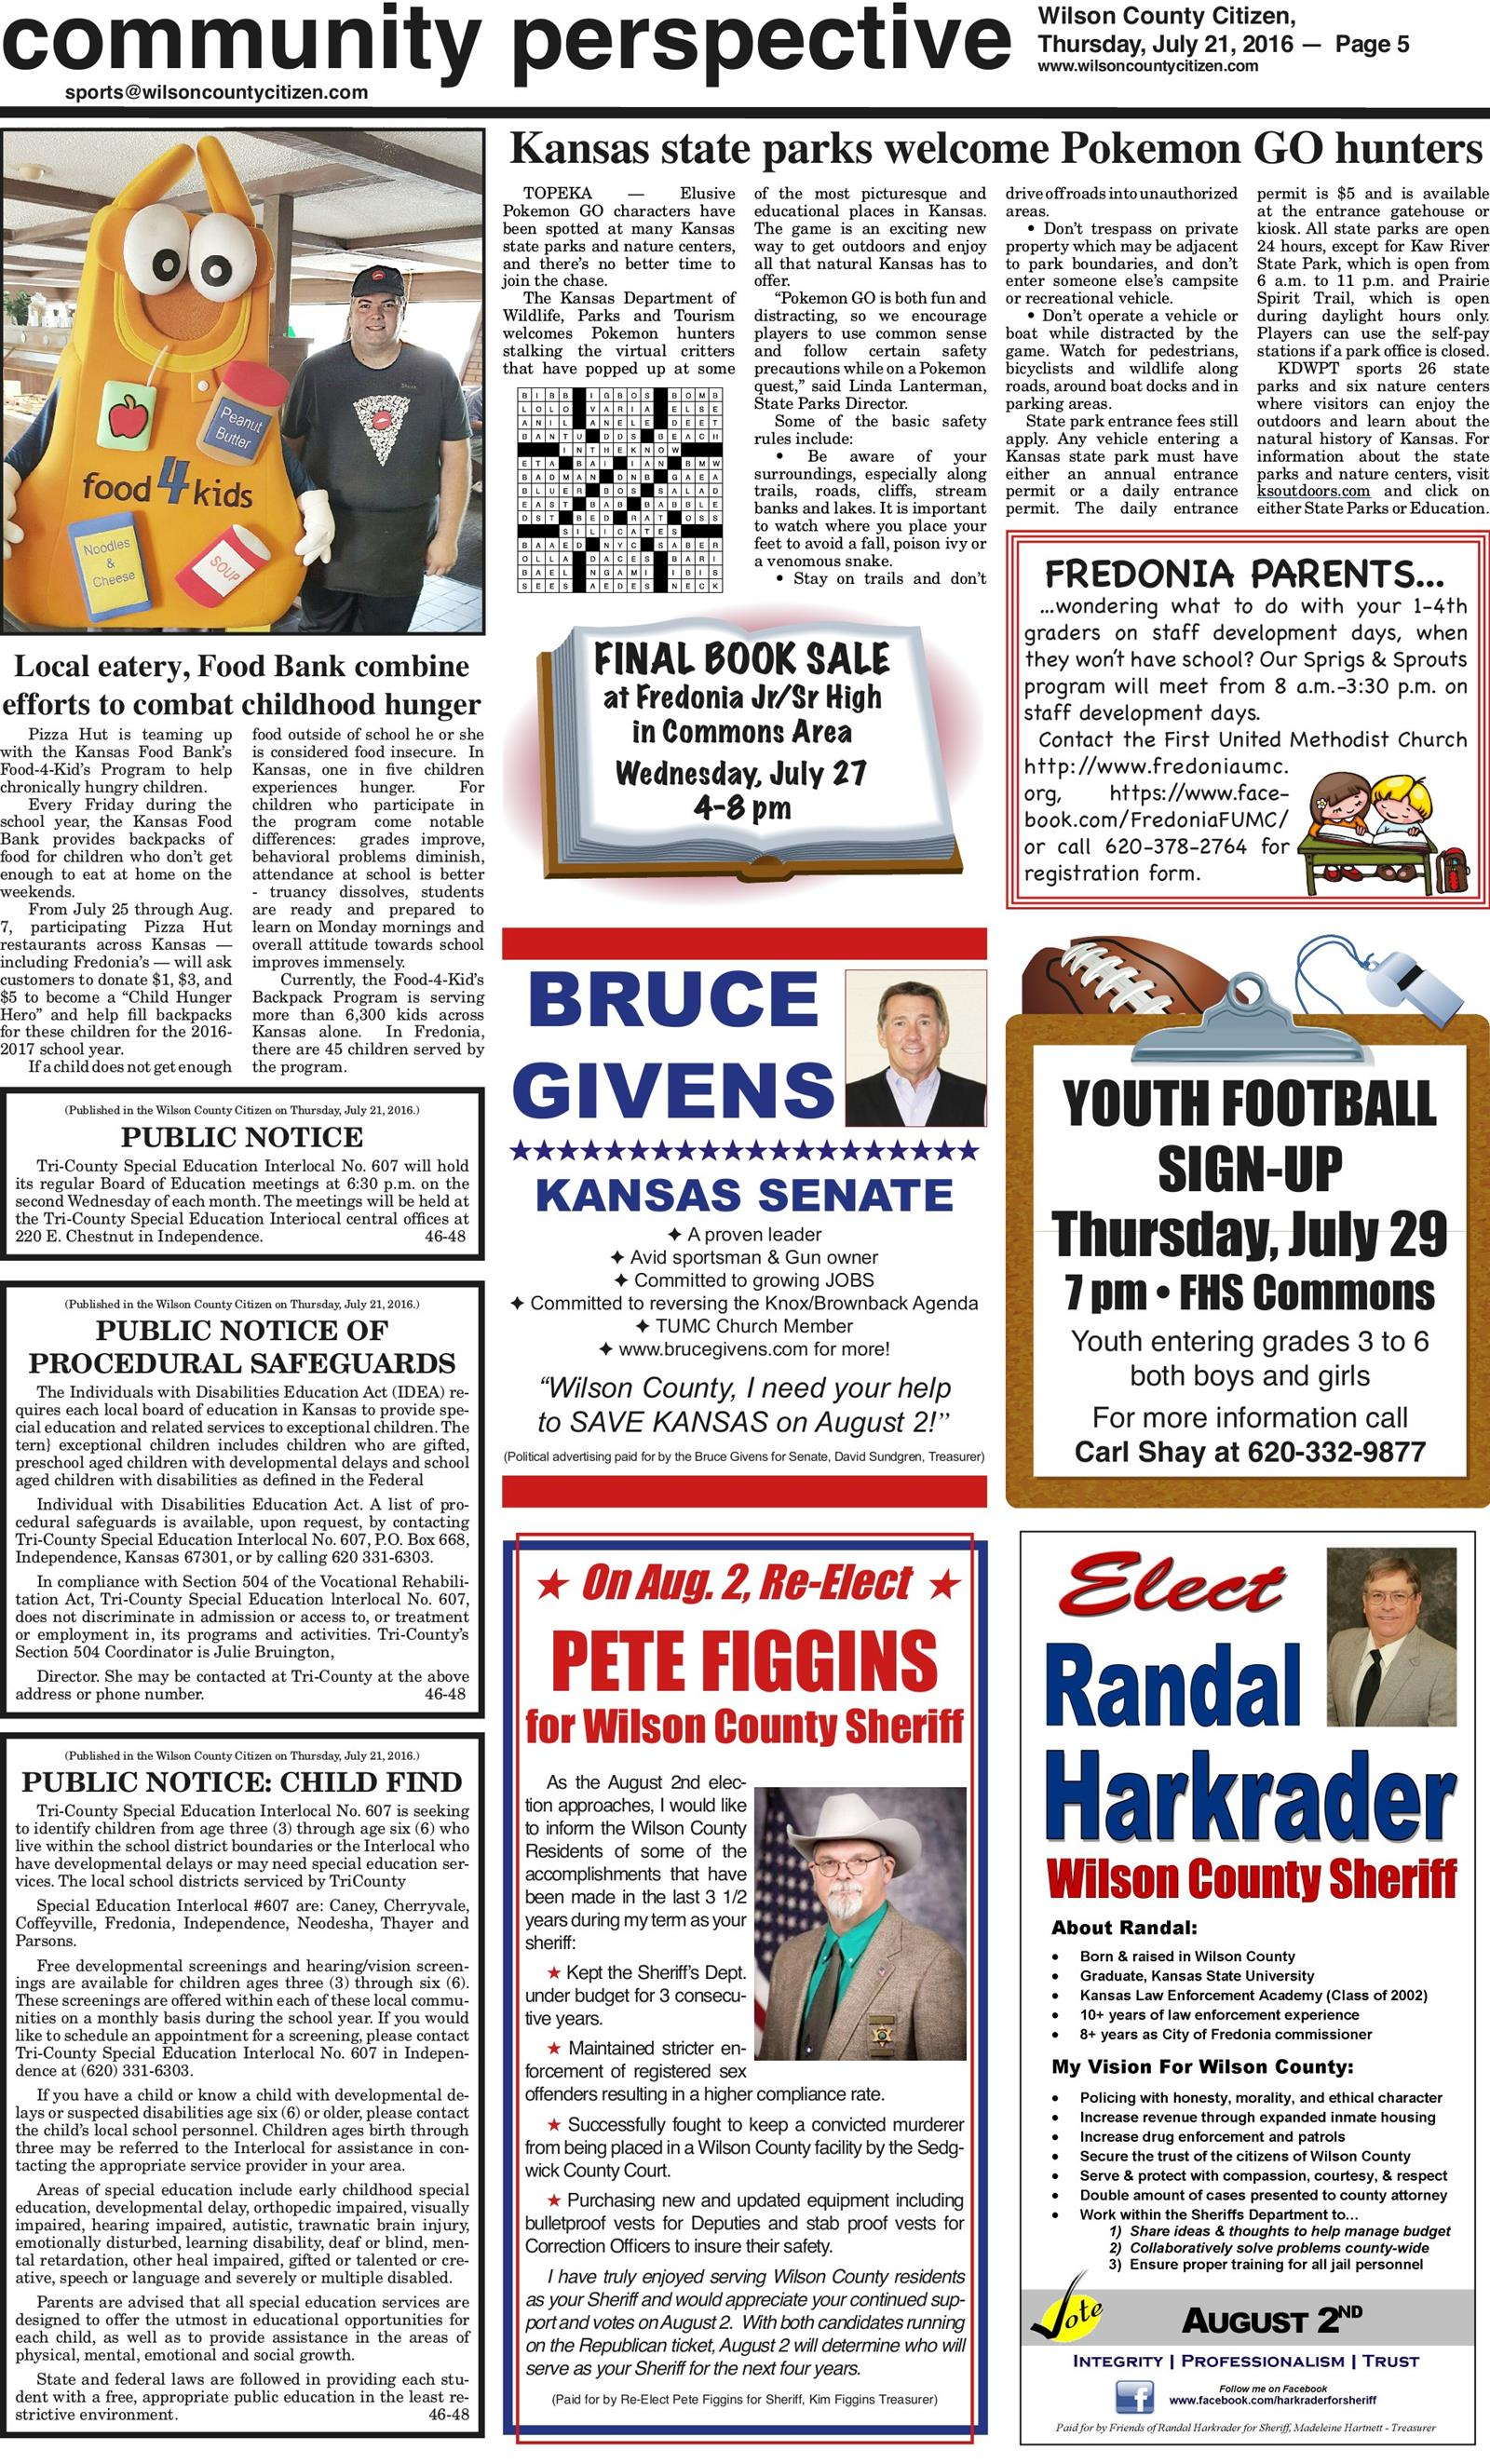 Wilson County Citizen July 21, 2016 To get started First tap on